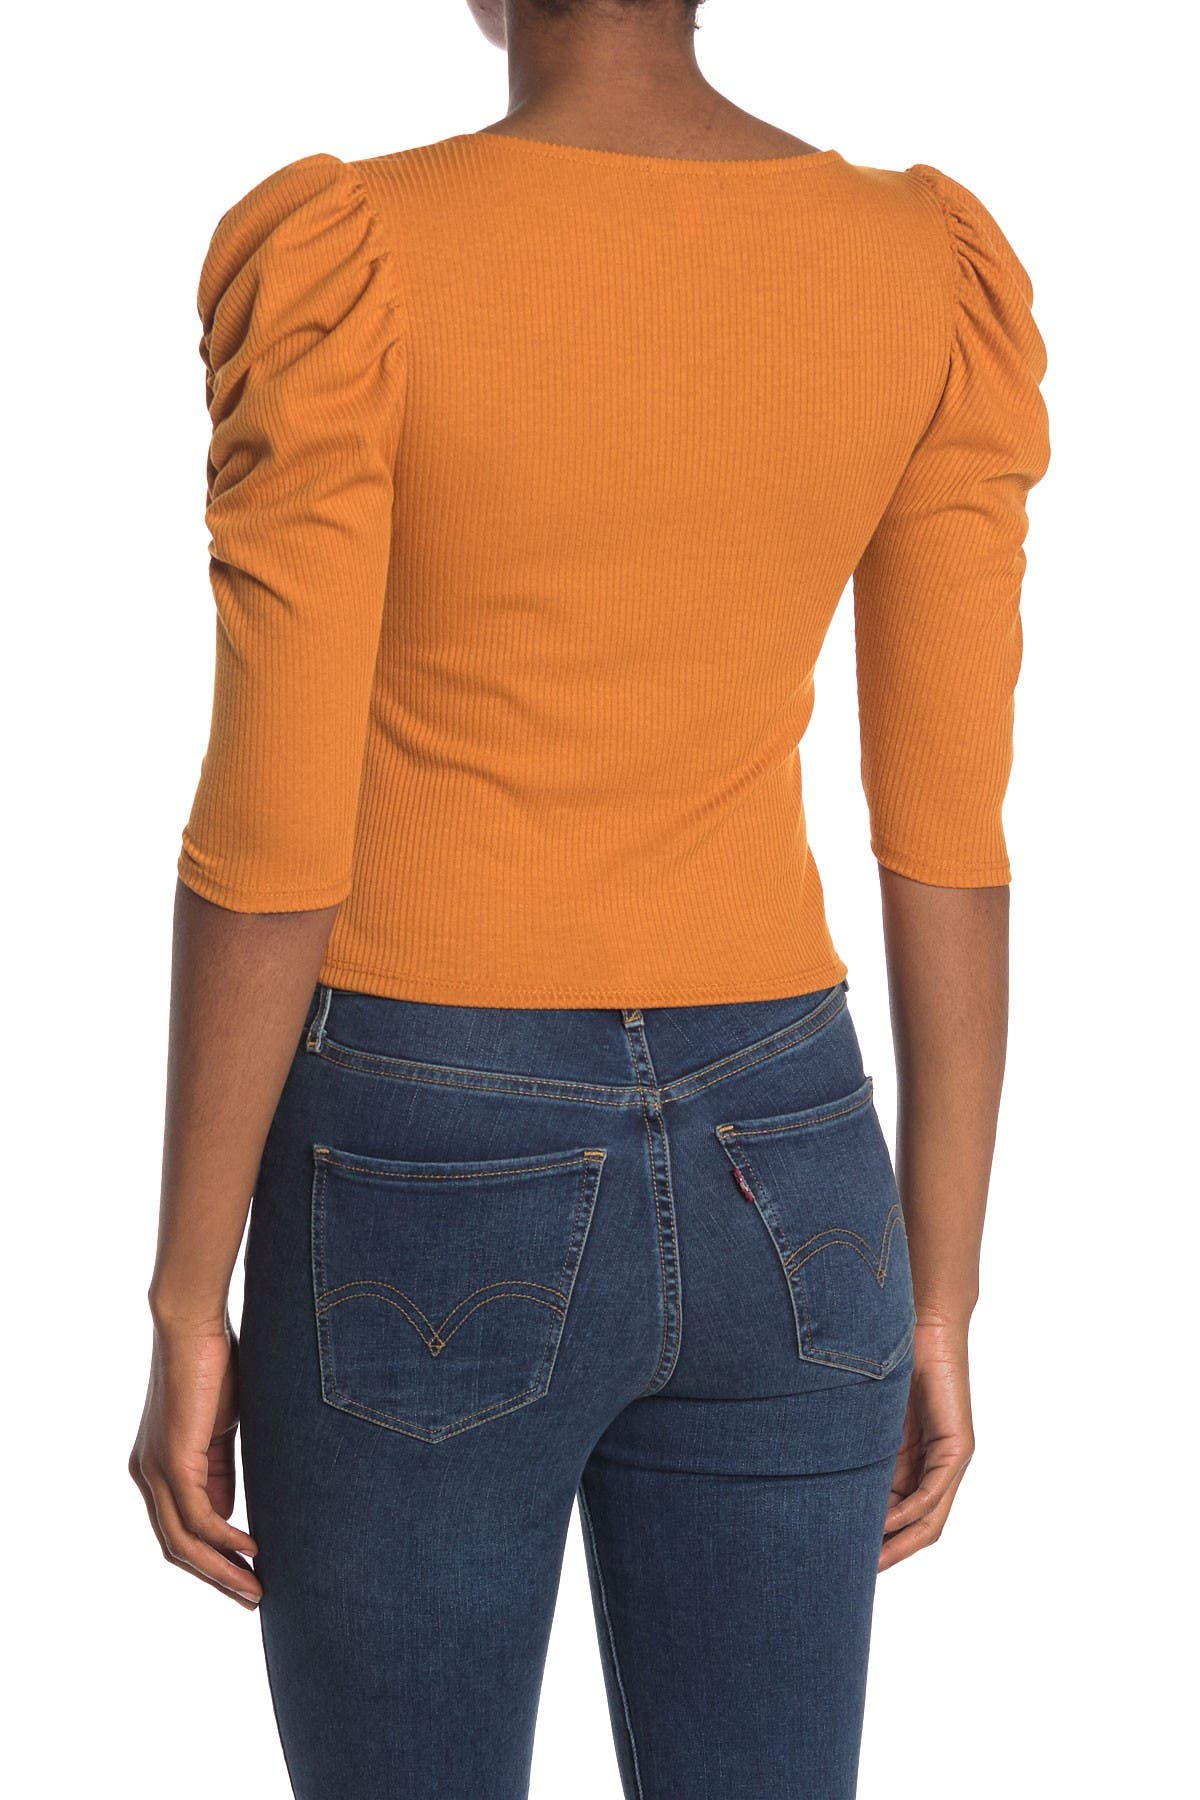 Image of Abound Puffed Ruched Sleeve Ribbed Top